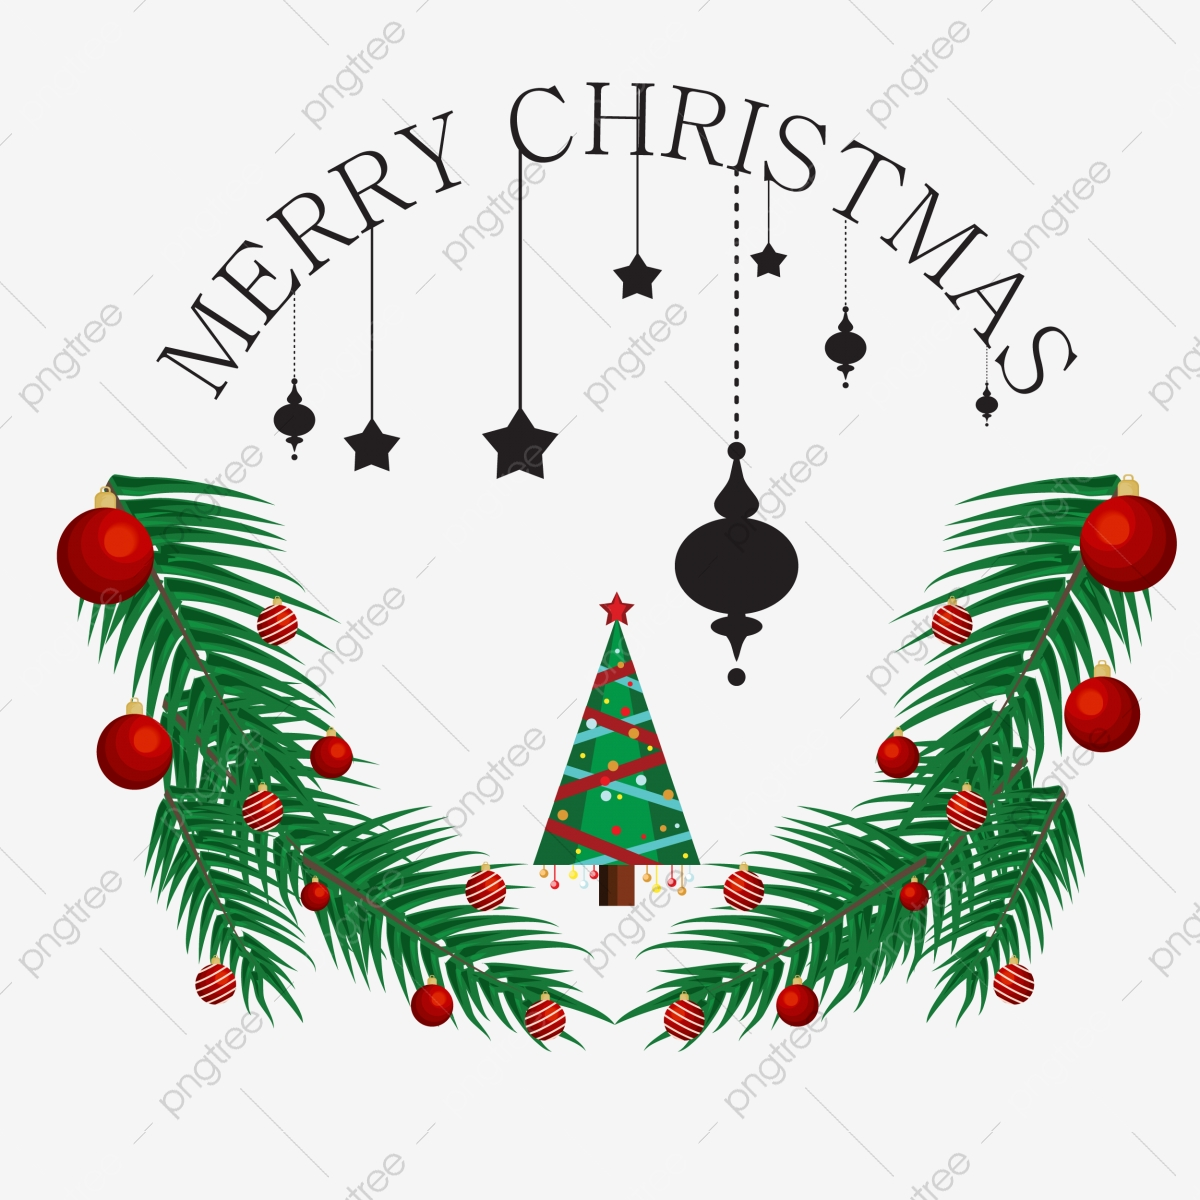 merry christmas vector banner christmas merry background png and vector with transparent background for free download https pngtree com freepng merry christmas vector banner 3735358 html